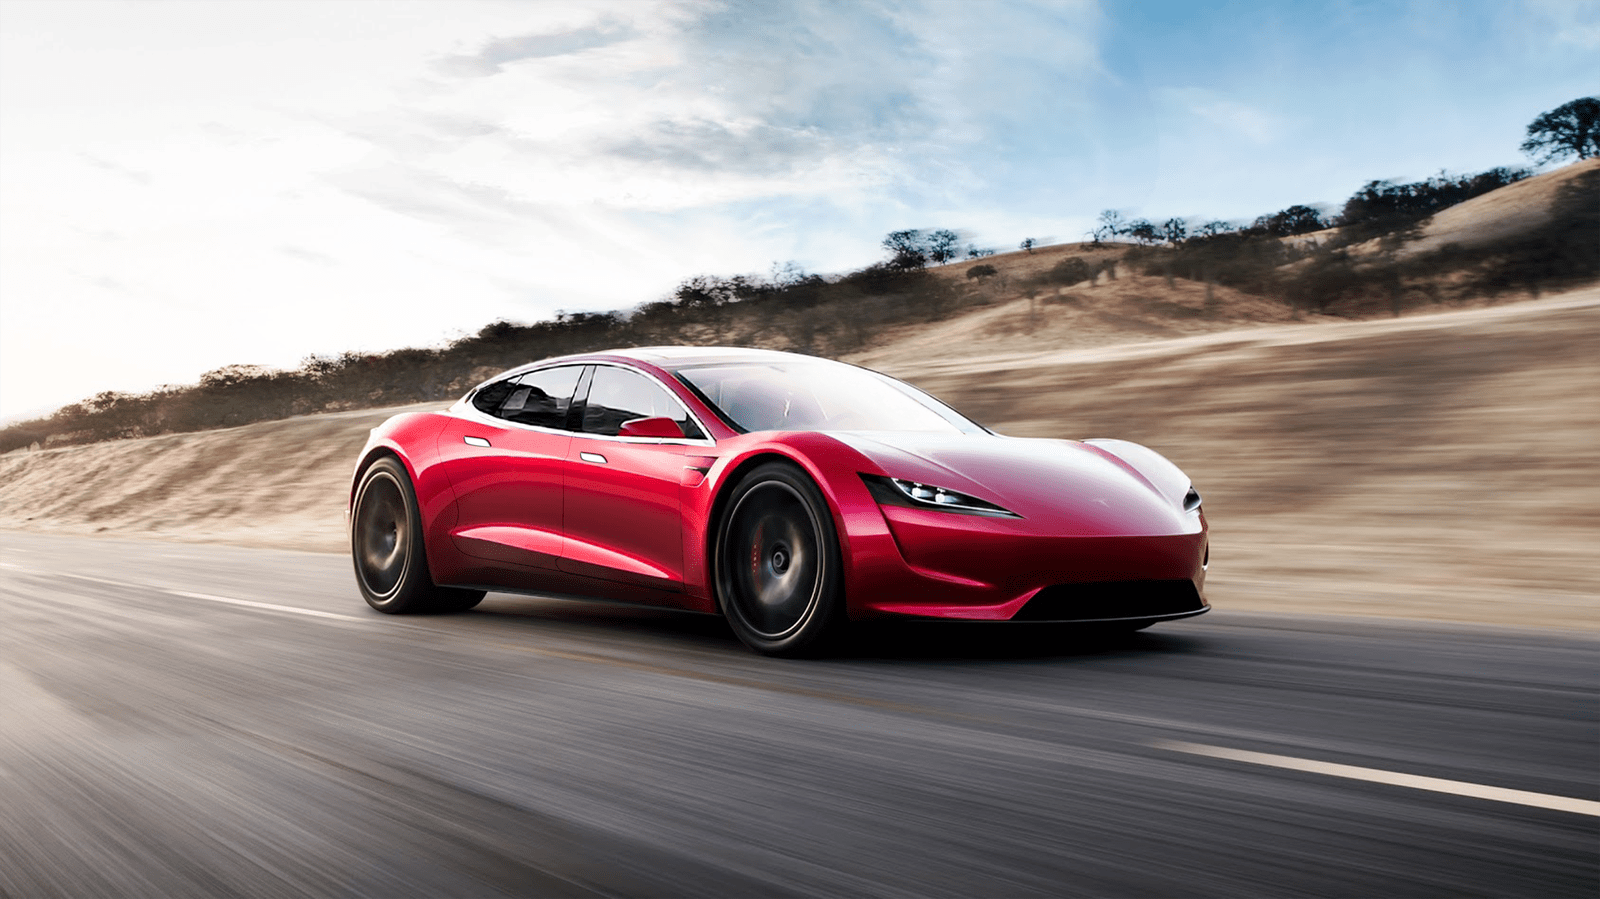 Is Car Insurance Tax Deductible >> 2020 Tesla Review - Tesla Roadster New Generation Electric Car 2020